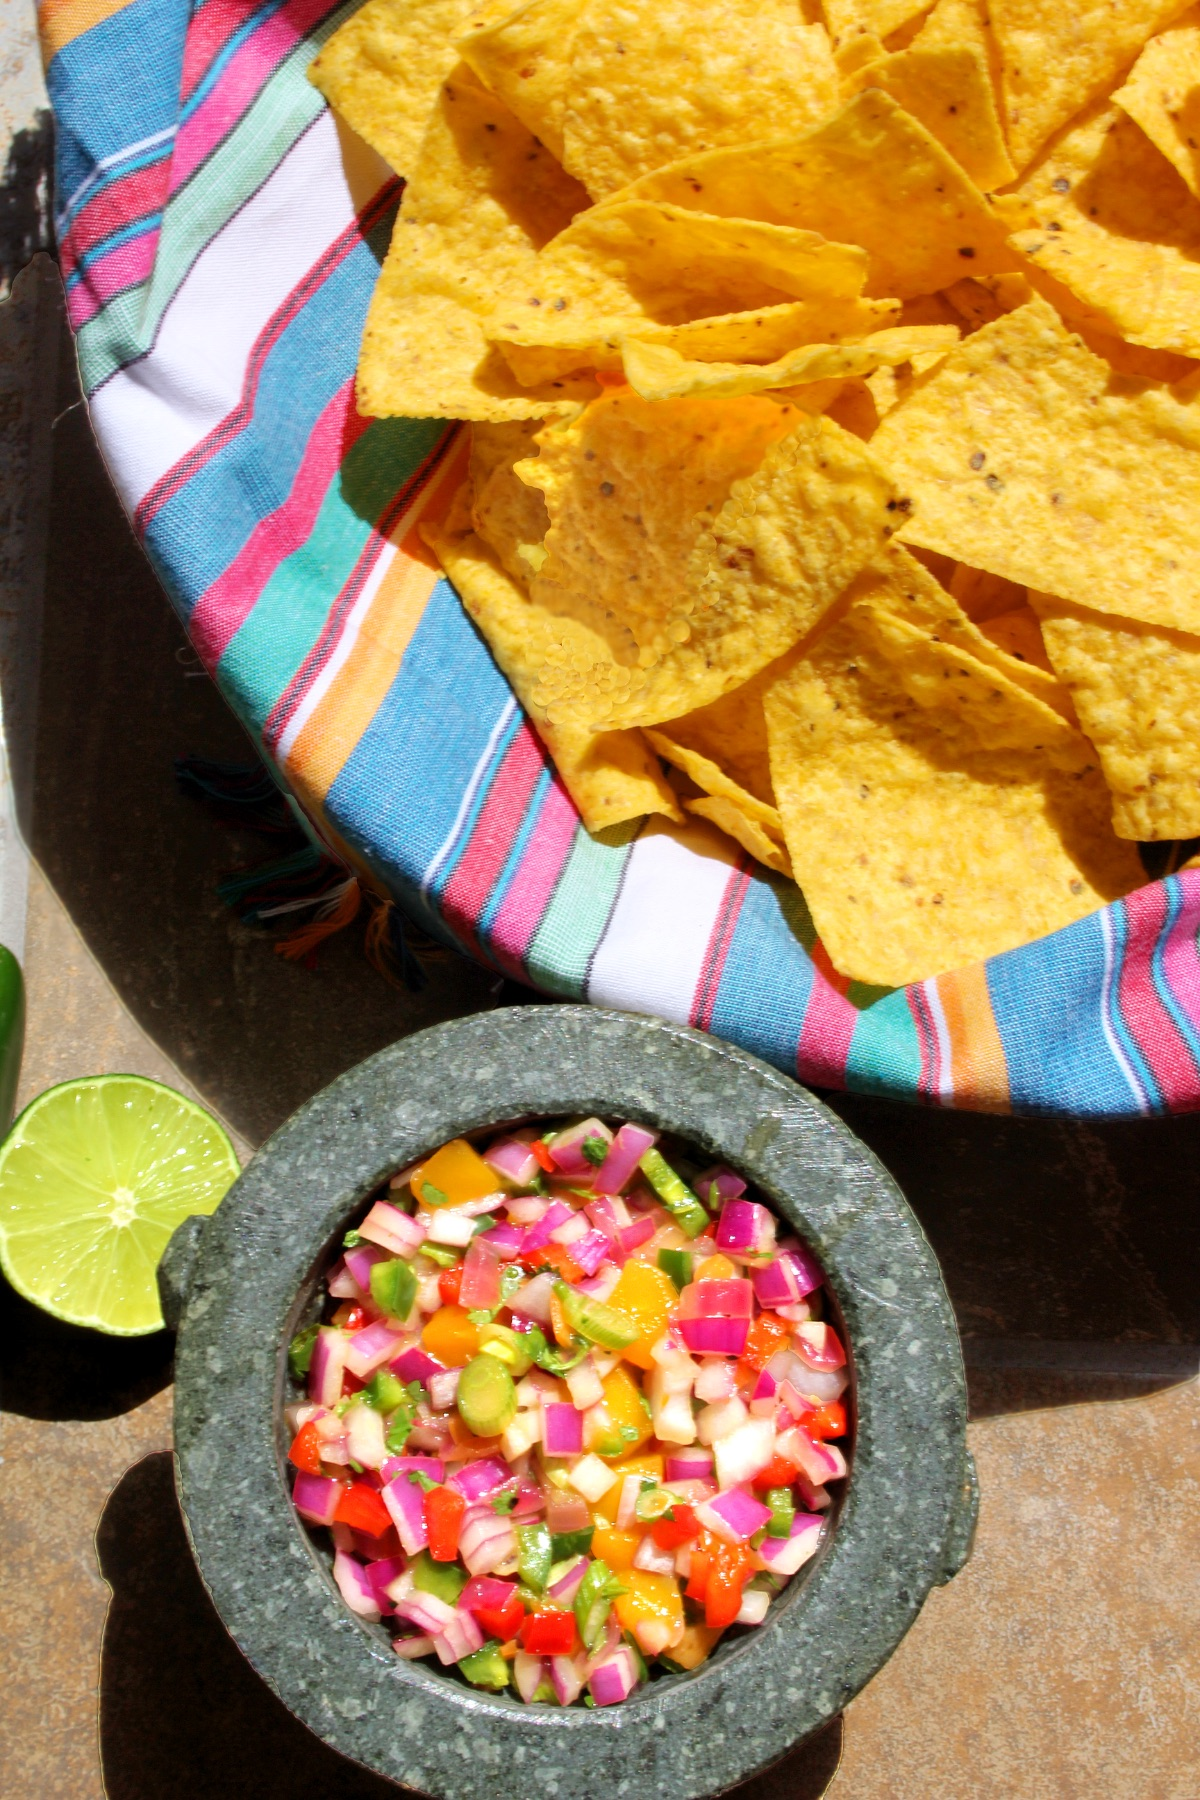 Fiery Mango-Habanero Salsa in a molcajete with tortilla chips and lime.